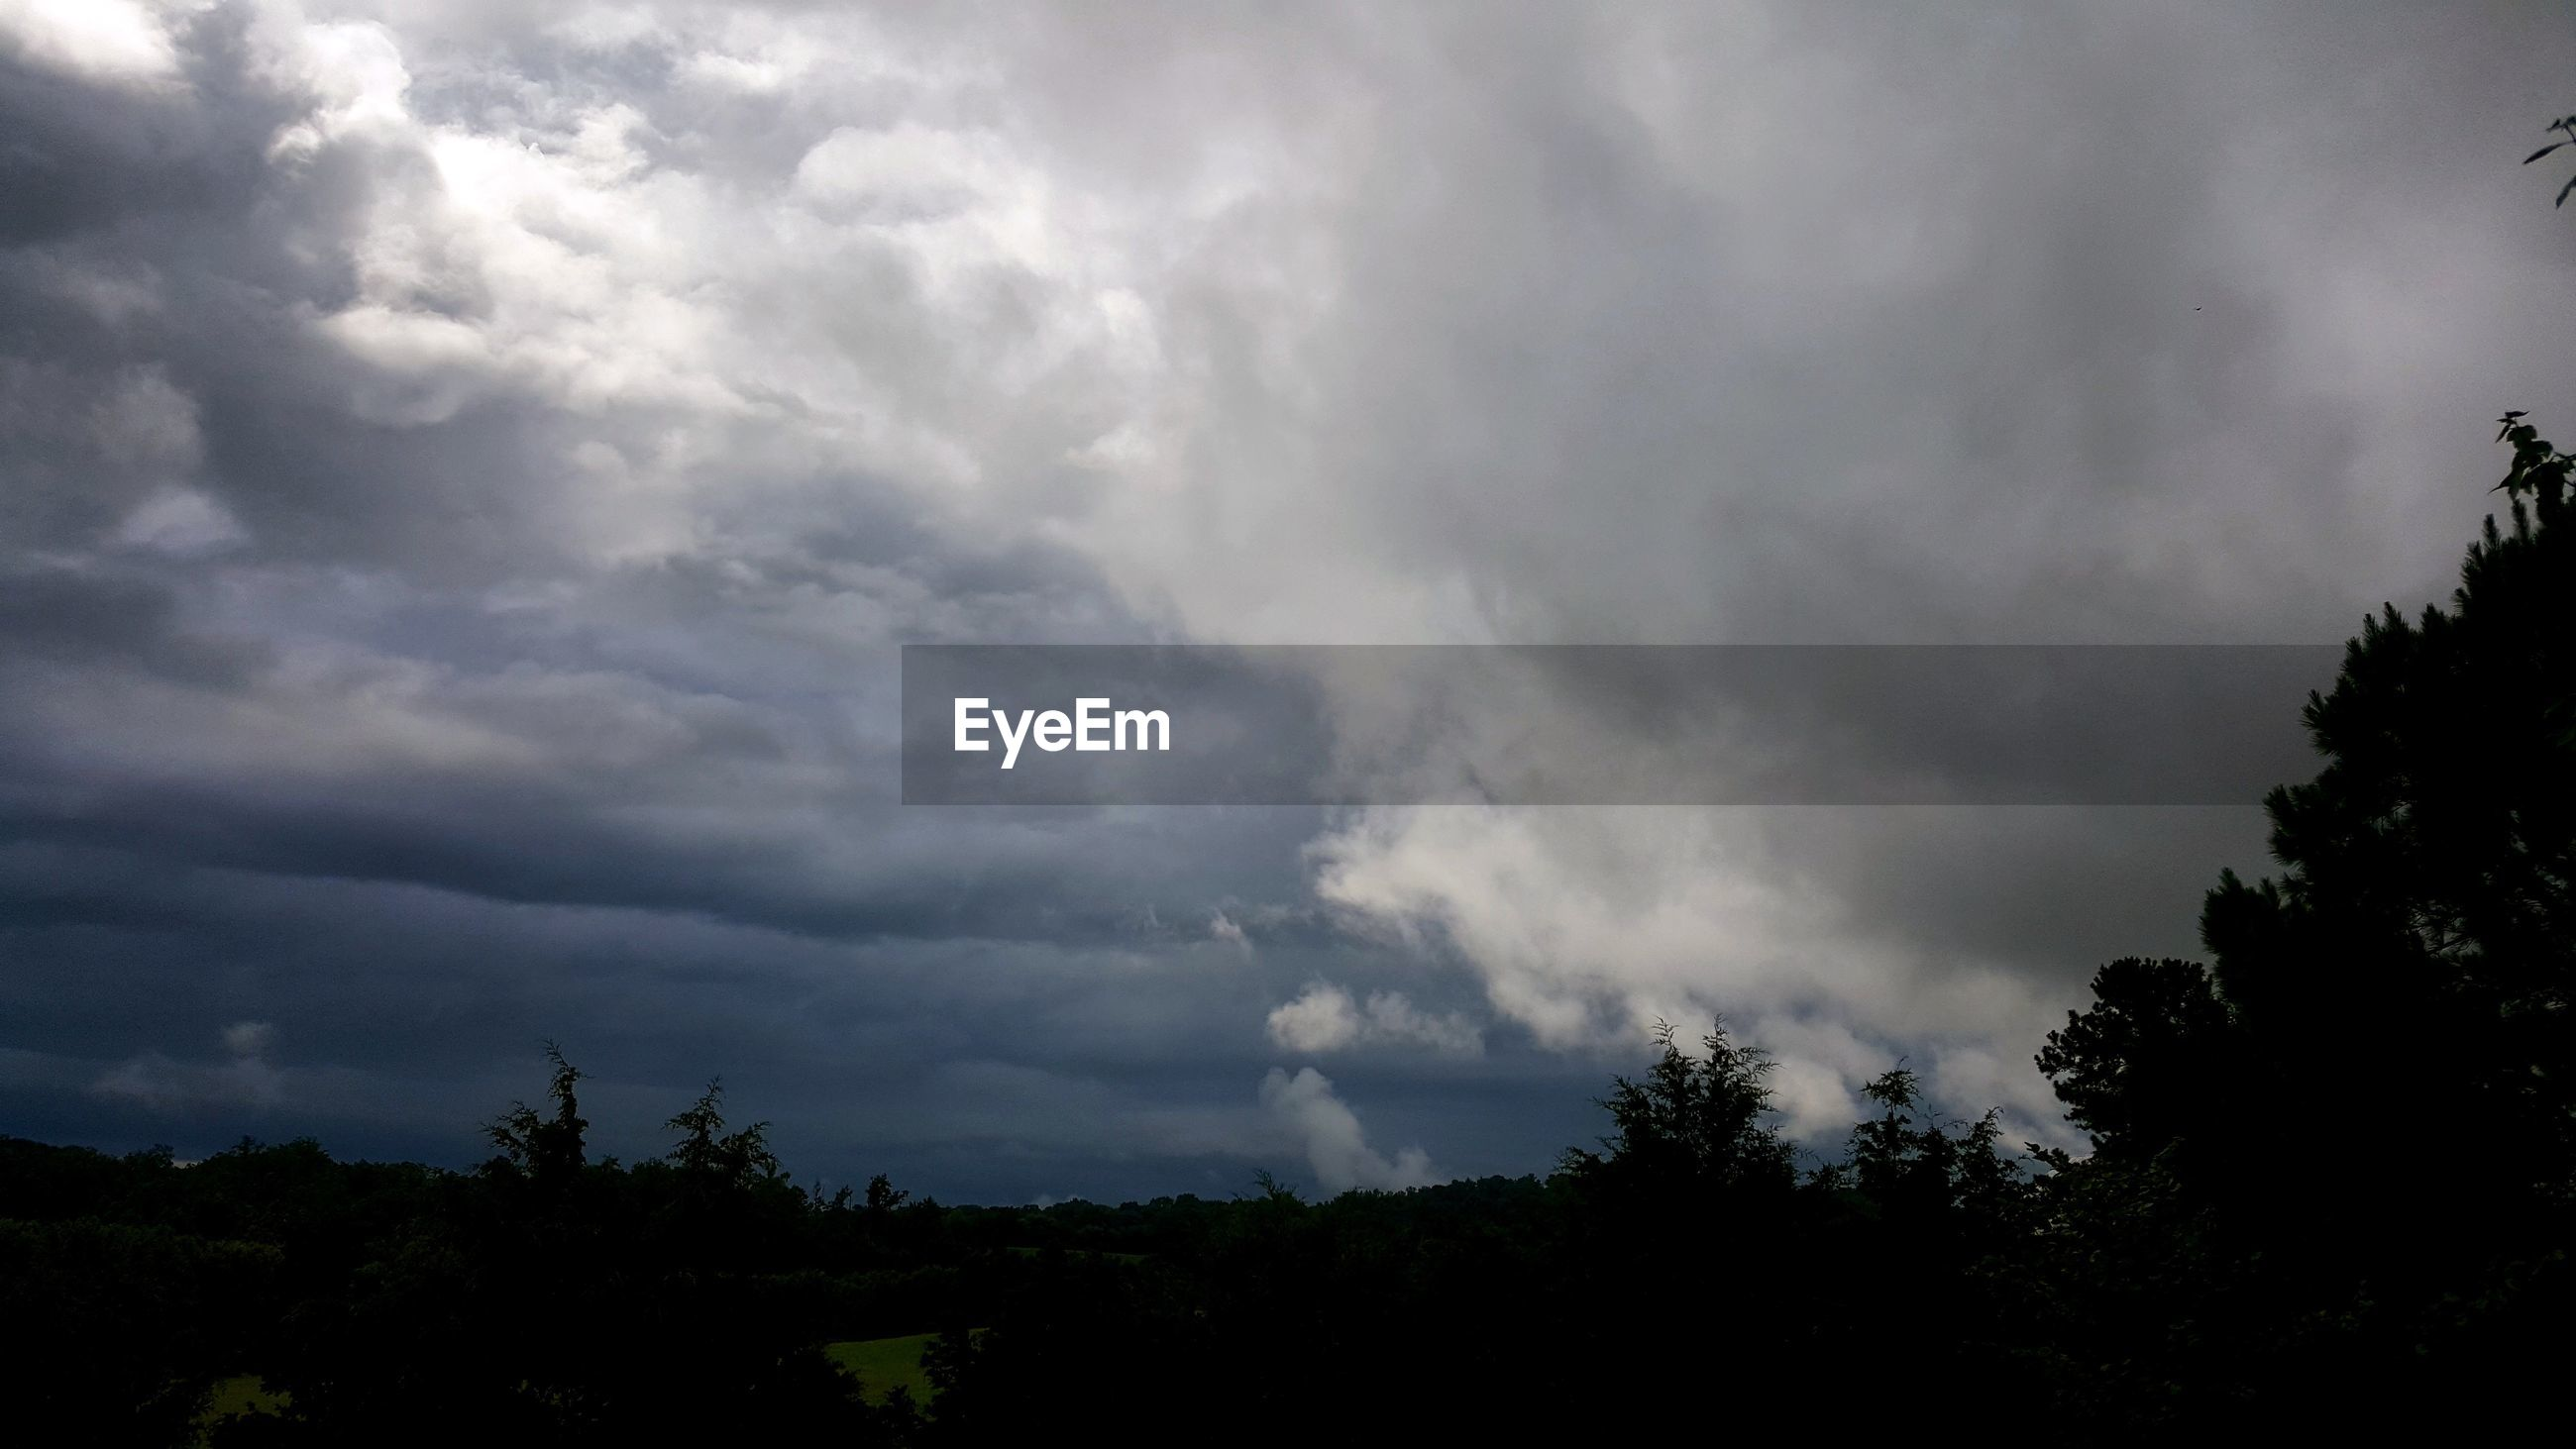 tree, weather, cloud - sky, nature, beauty in nature, sky, storm cloud, no people, scenics, storm, tranquility, silhouette, outdoors, low angle view, thunderstorm, day